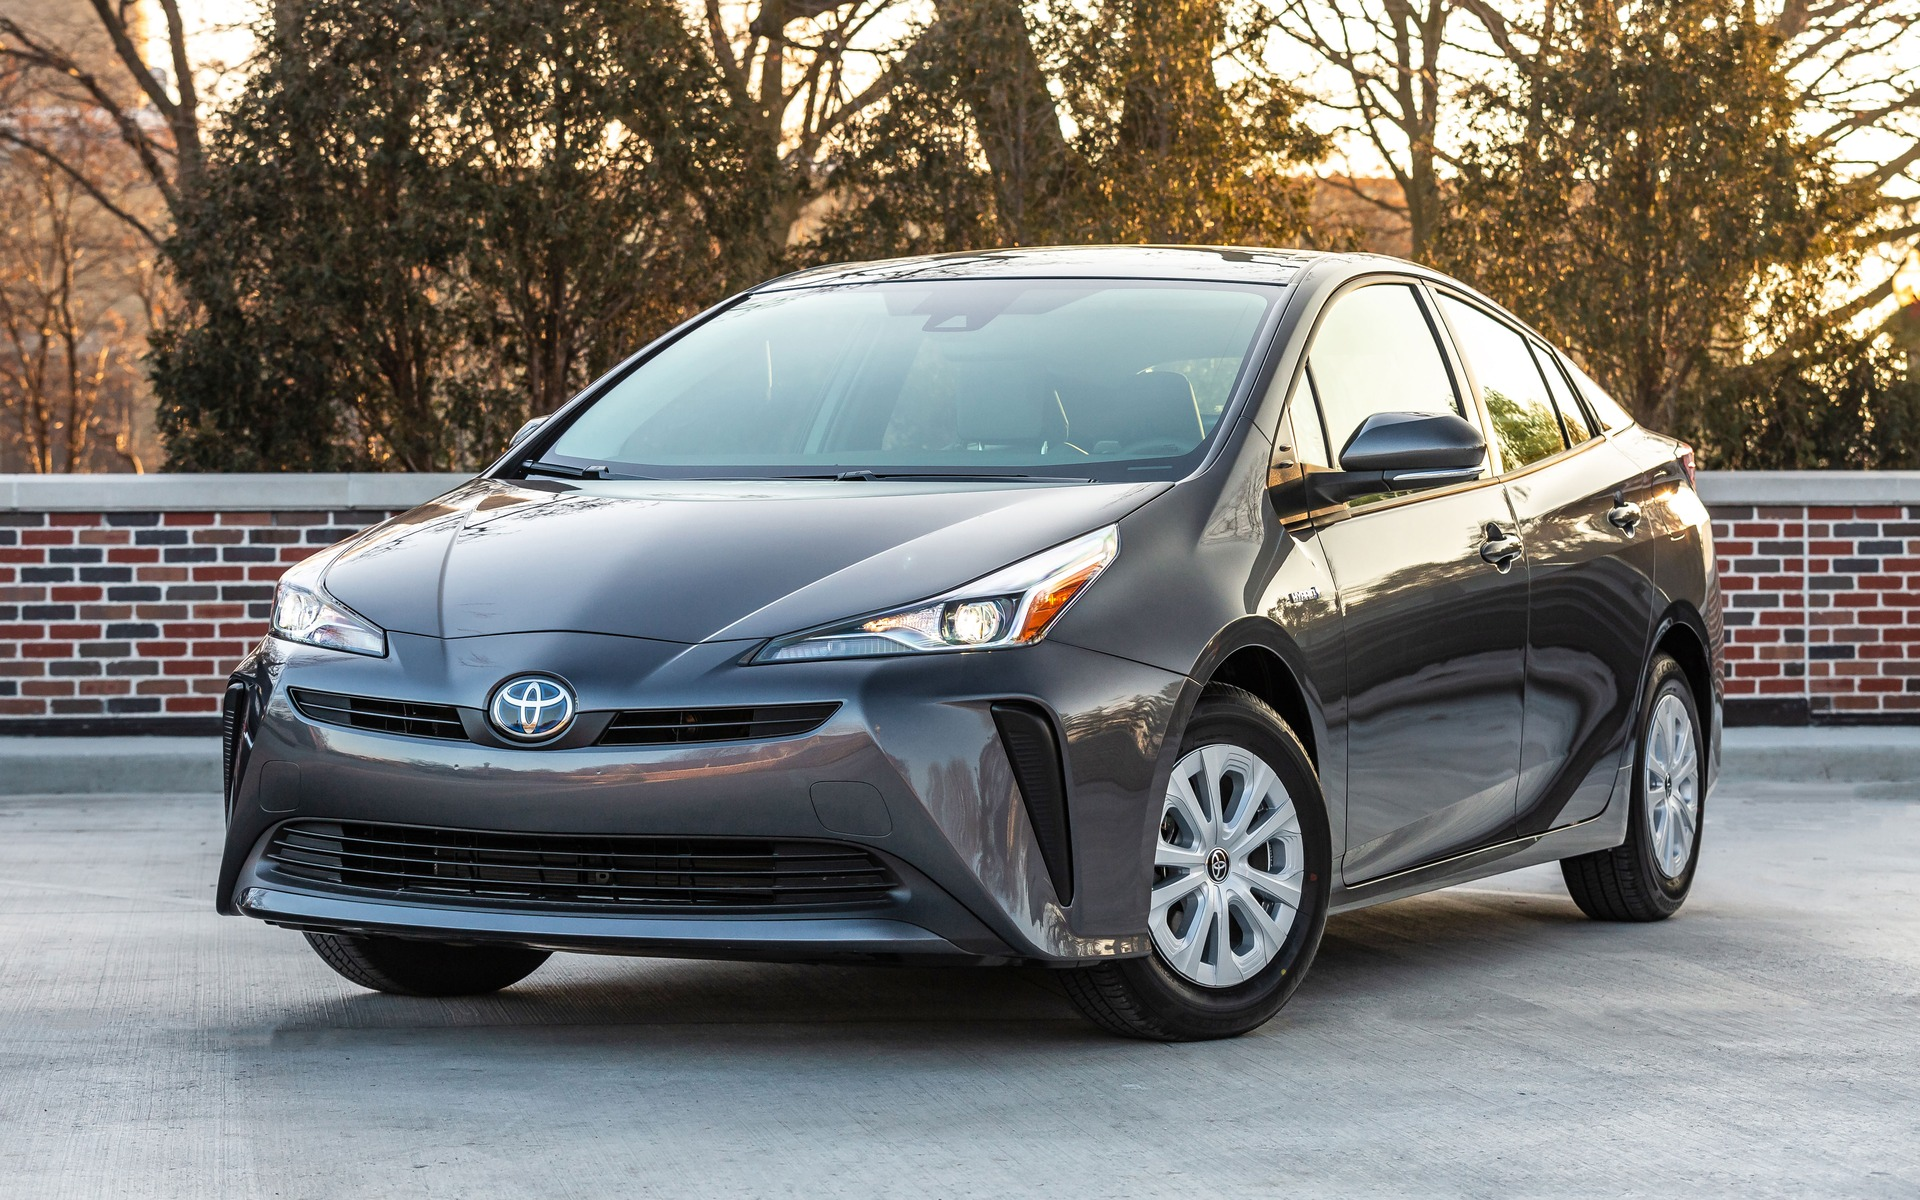 Five Things to Know About the 2020 Toyota Prius - The Car ...